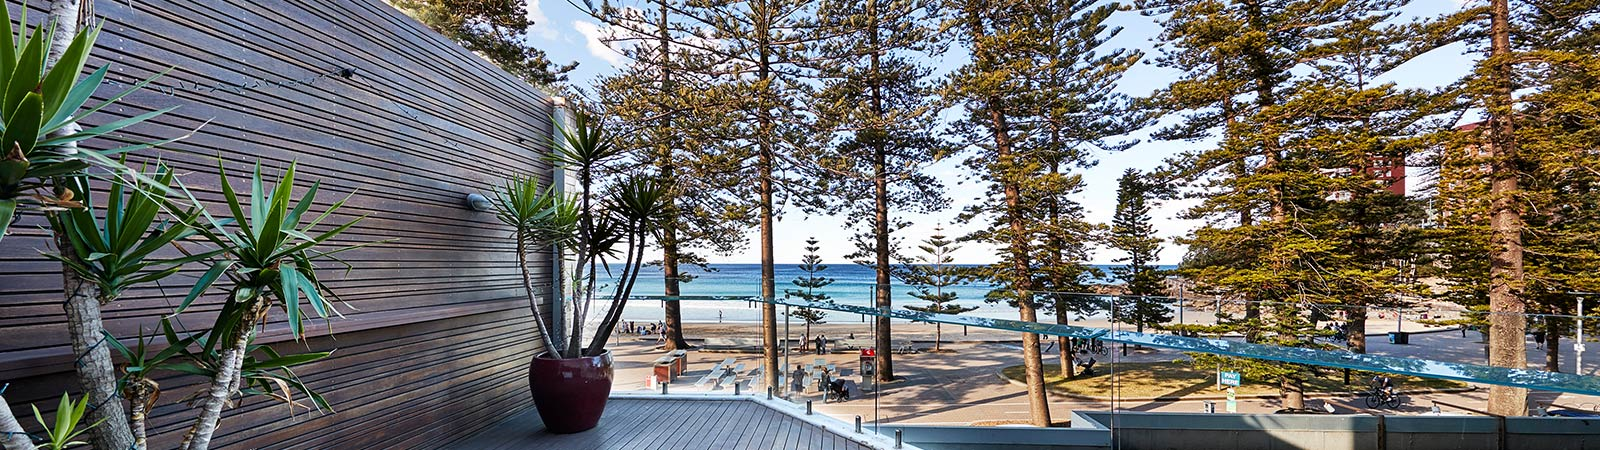 The Sebel Sydney Manly Beach